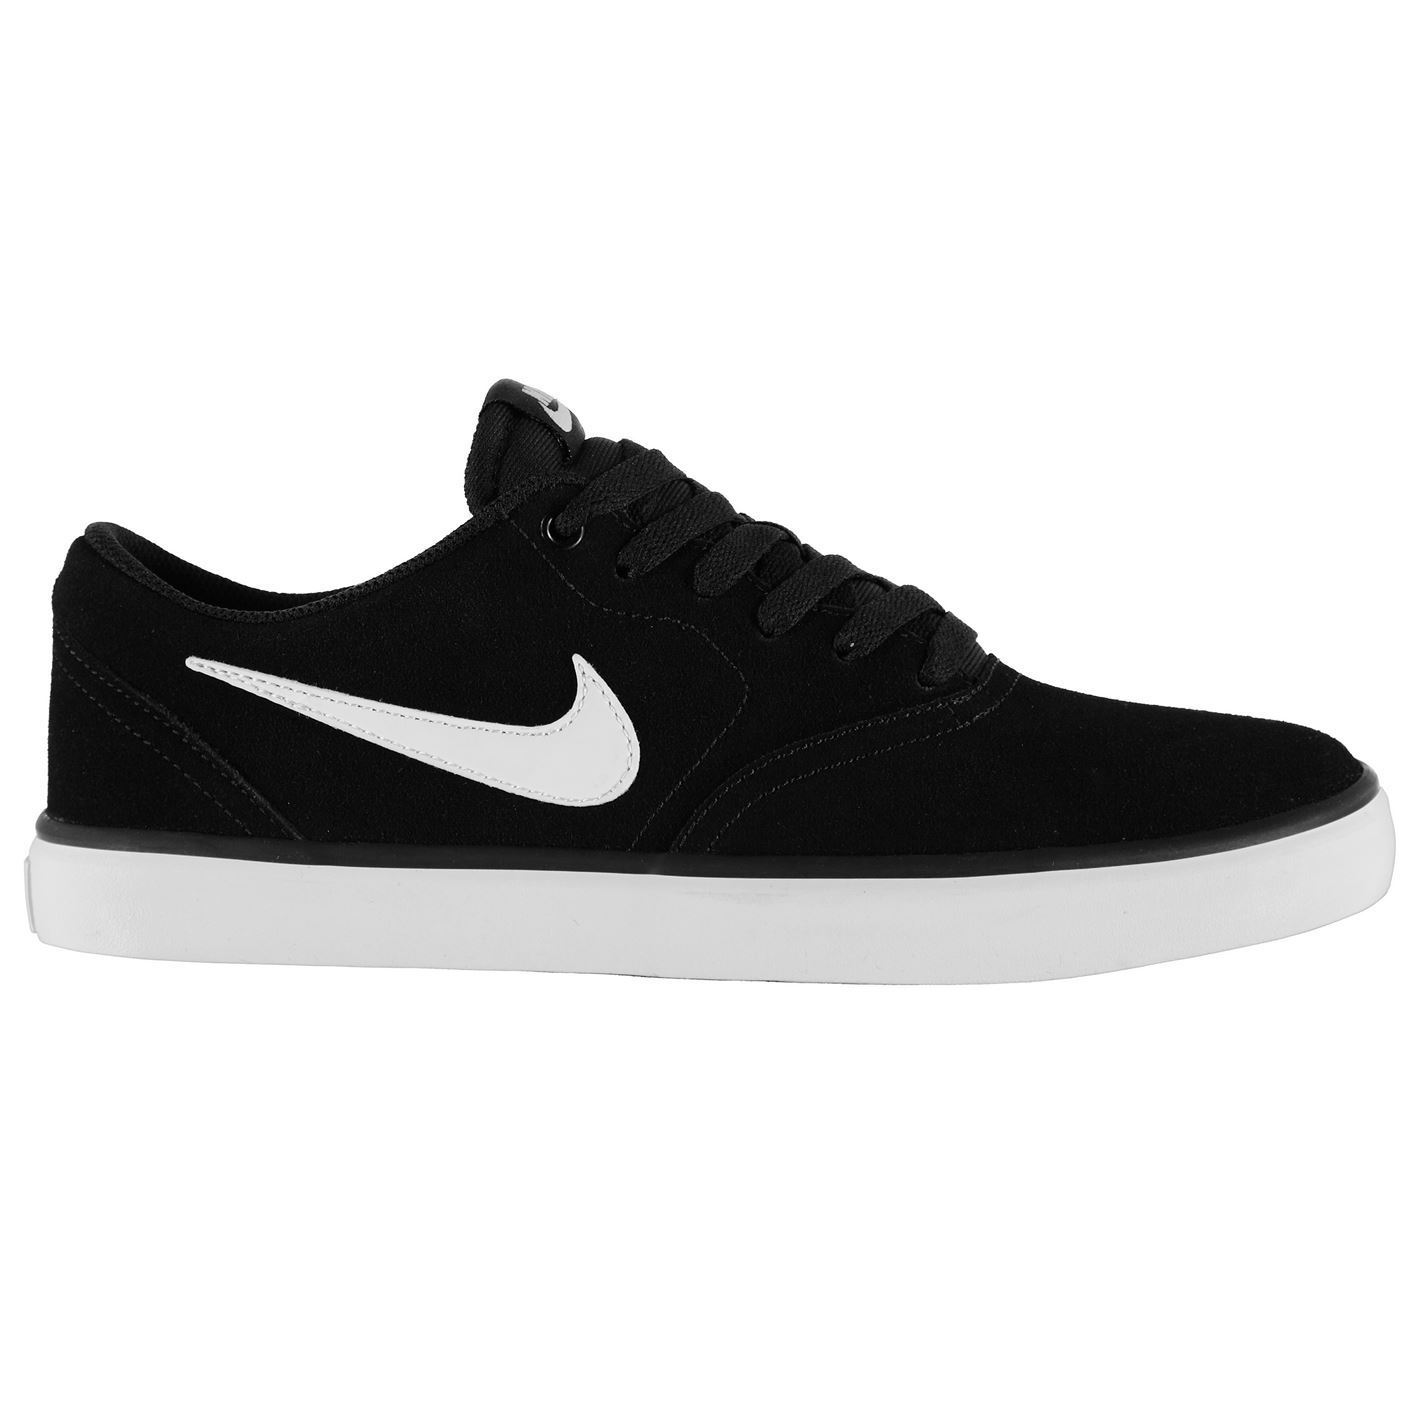 save off 94cb8 3f15d Image is loading Nike-SB-Check-Solar-Skate-Shoes-Mens-Black-